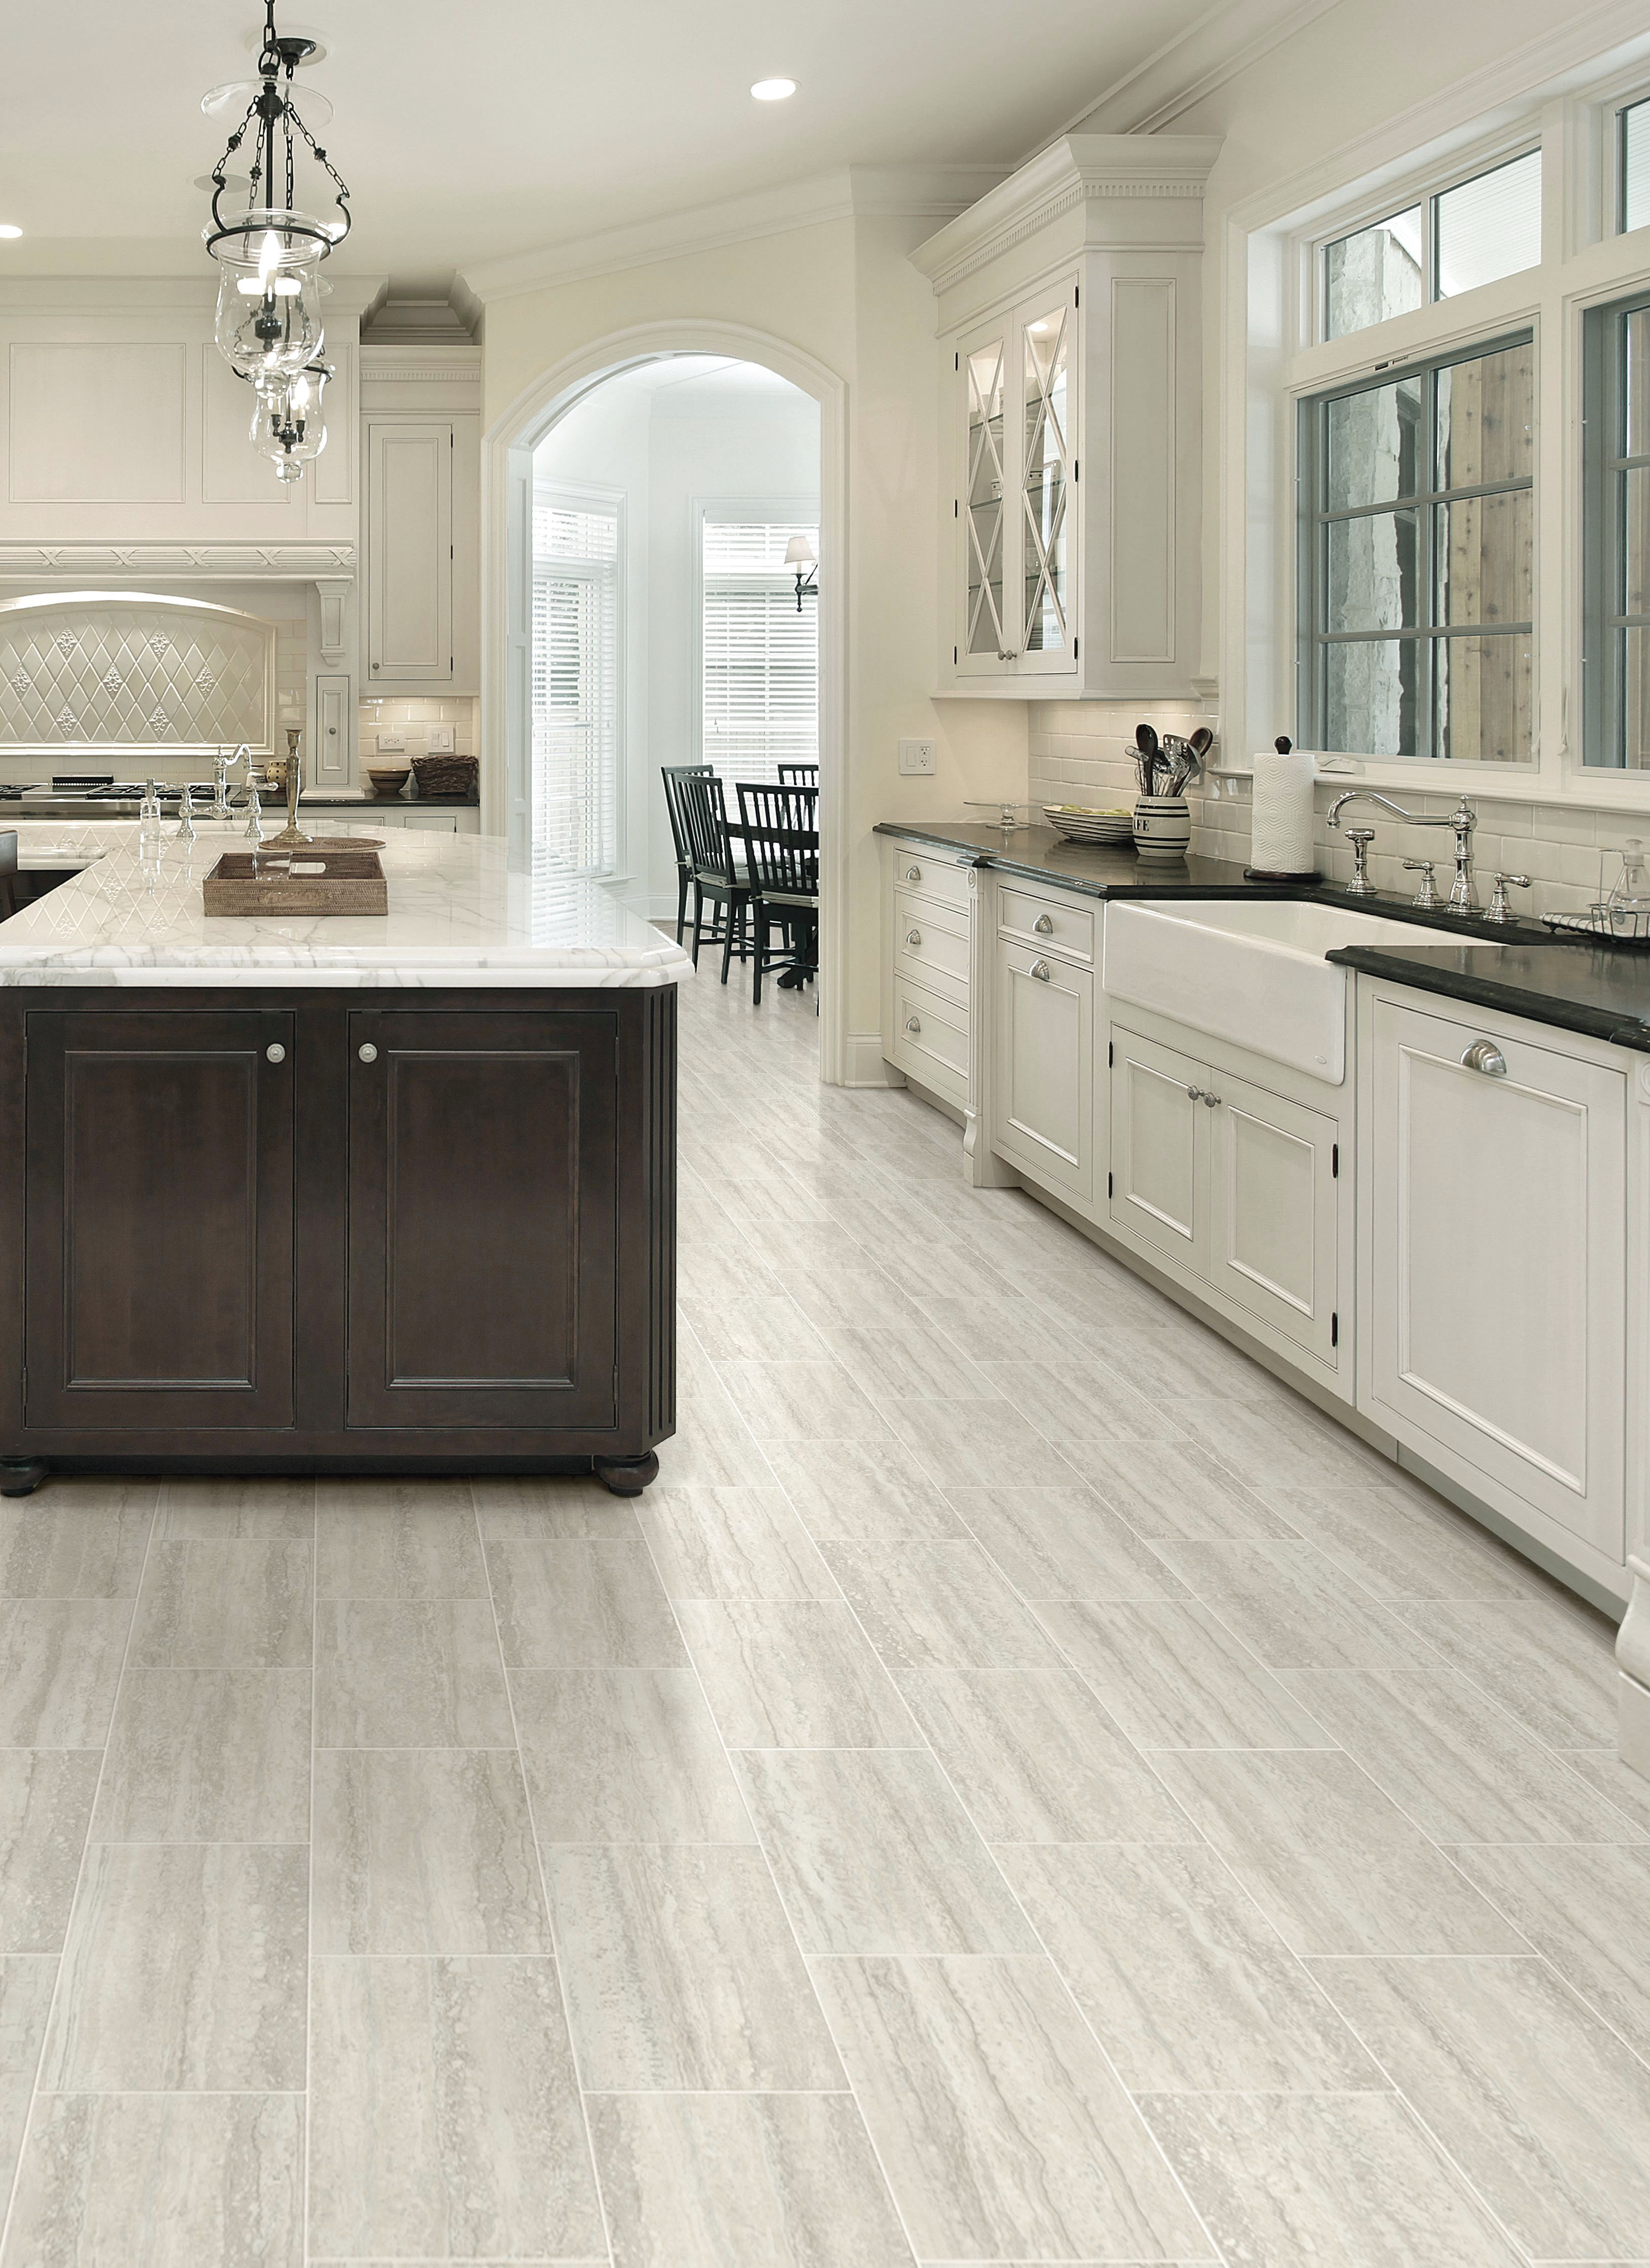 hardwood flooring cost bay area of stone flooring cost all about kitchen in 2018 pinterest throughout stone flooring cost